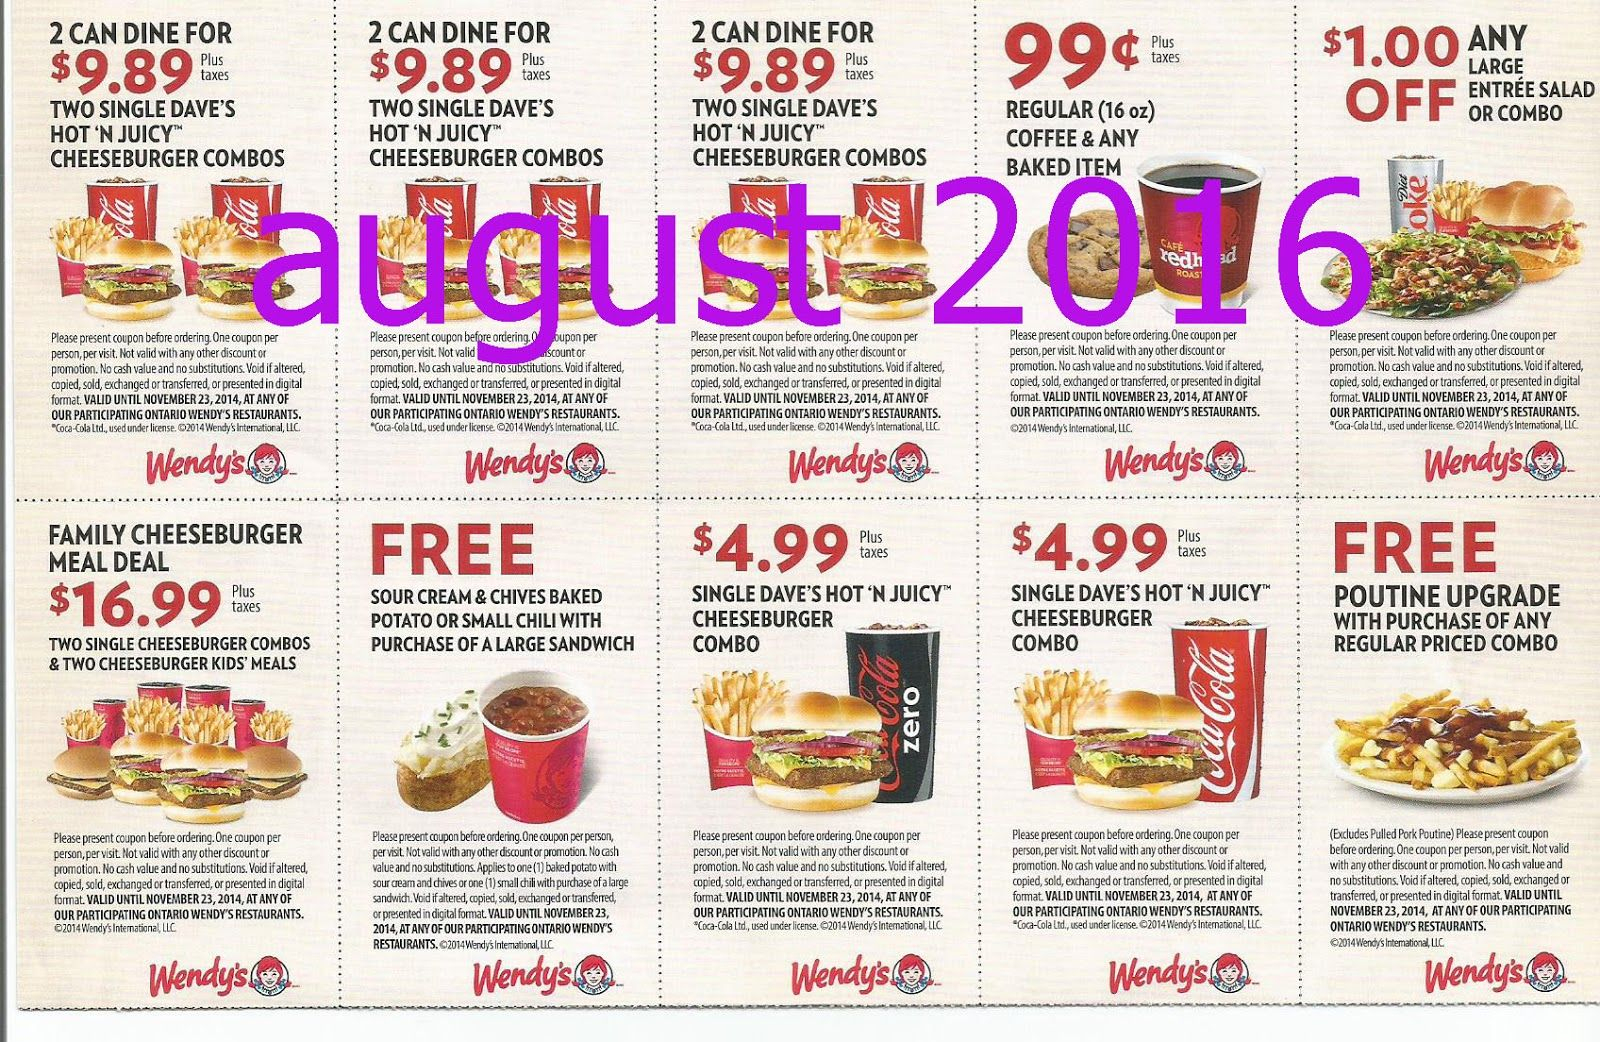 Free Printable Coupons: Wendys Coupons | Fast Food Coupons - Free Printable Coupons 2014